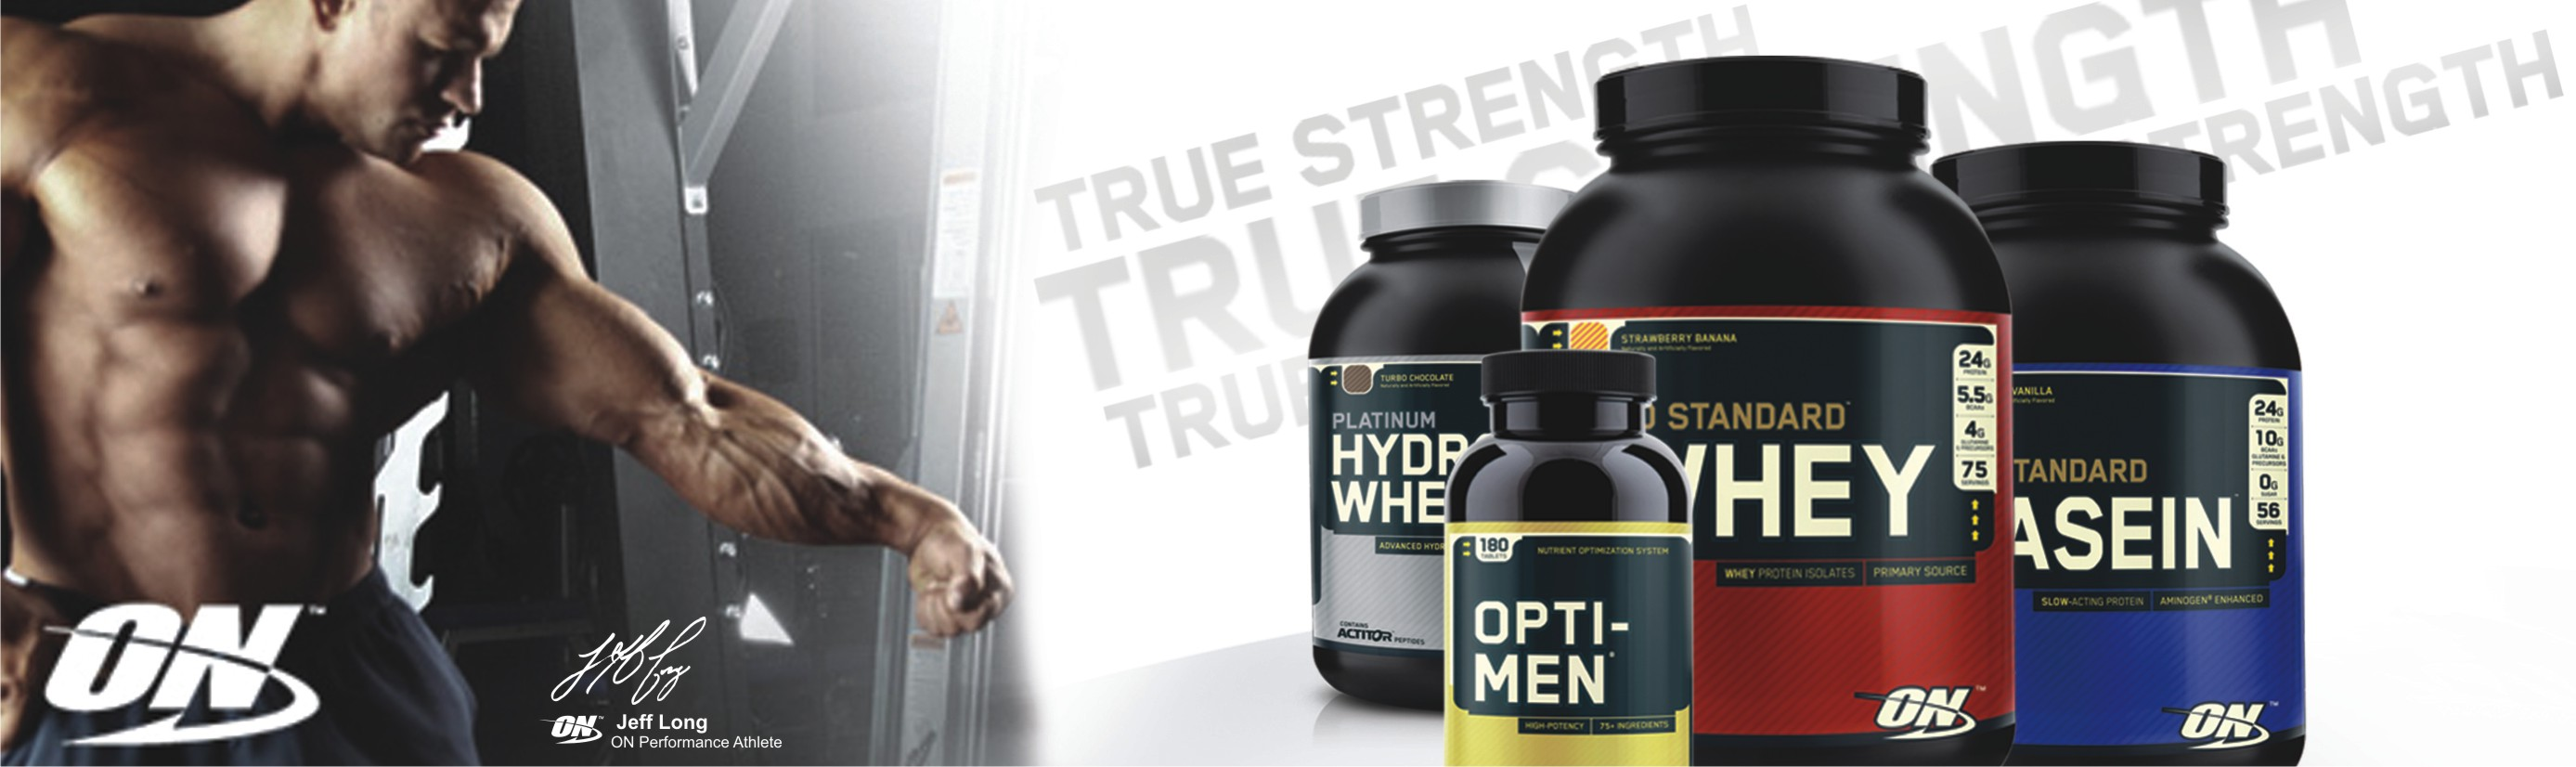 Shop Optimum Nutrition Supplements at OptimalNutrition.com